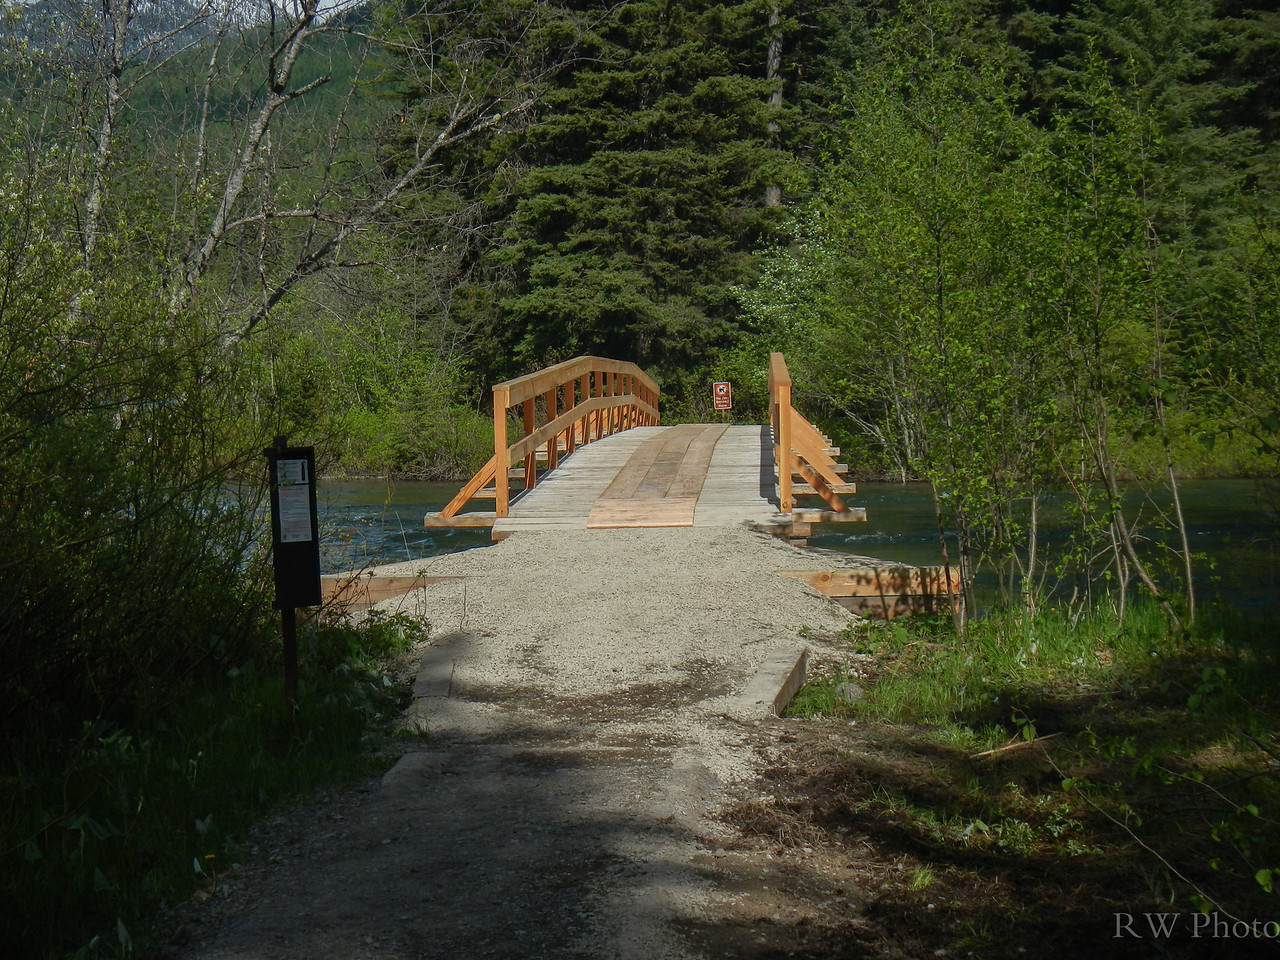 New bridge over Bowman Creek, thanks to Chip and the trails crew